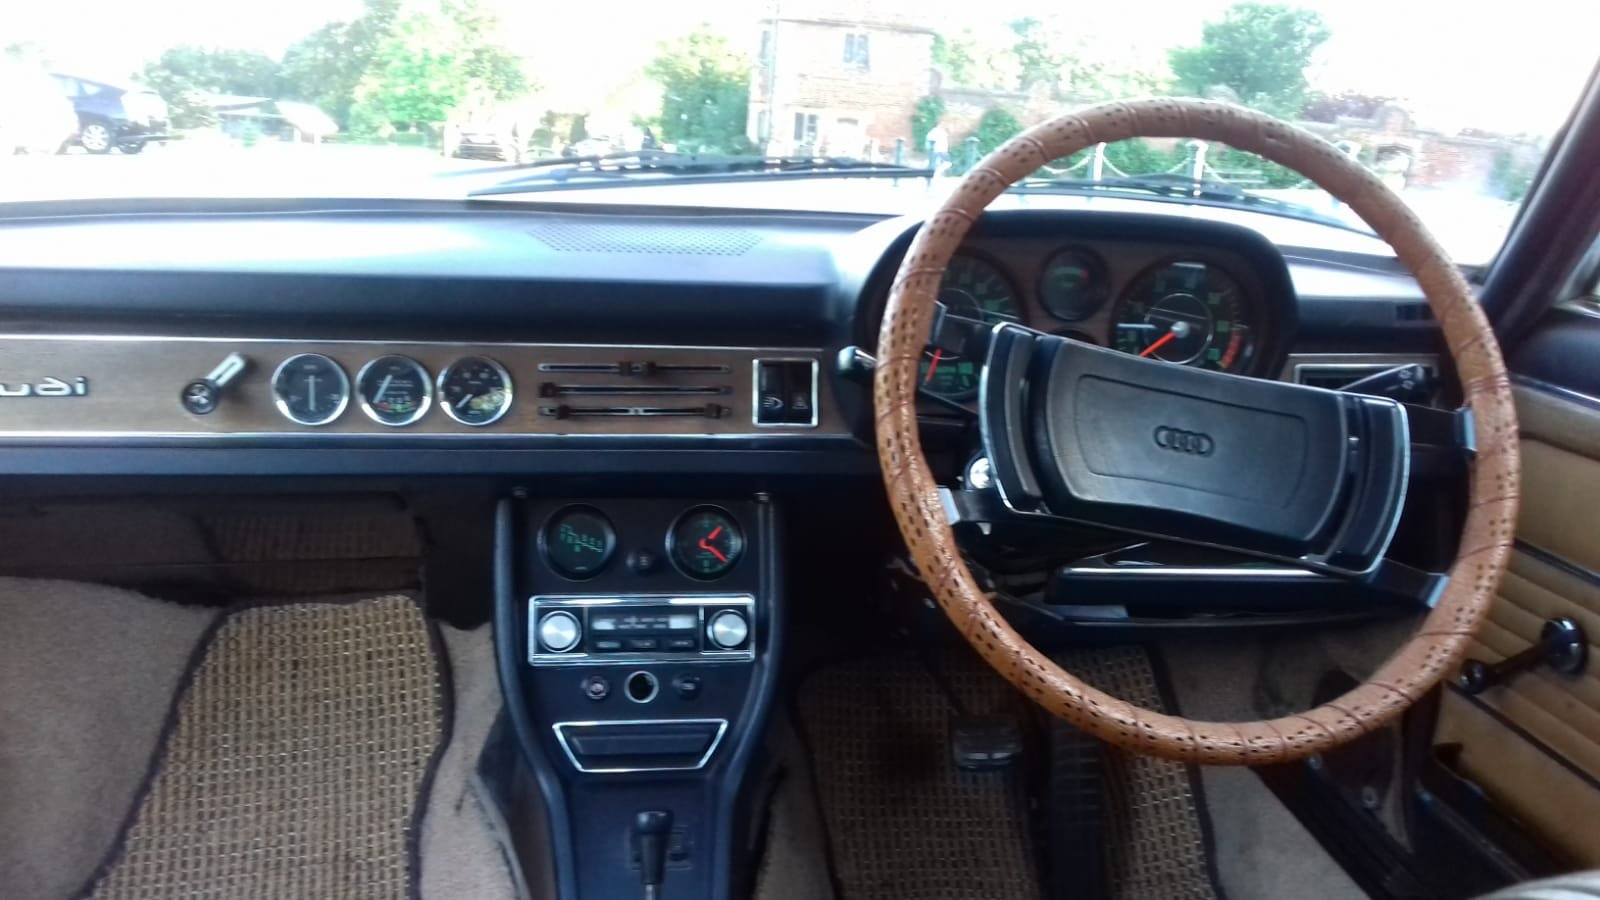 1974 Audi 100 S Coupe Automatic For Sale (picture 4 of 6)